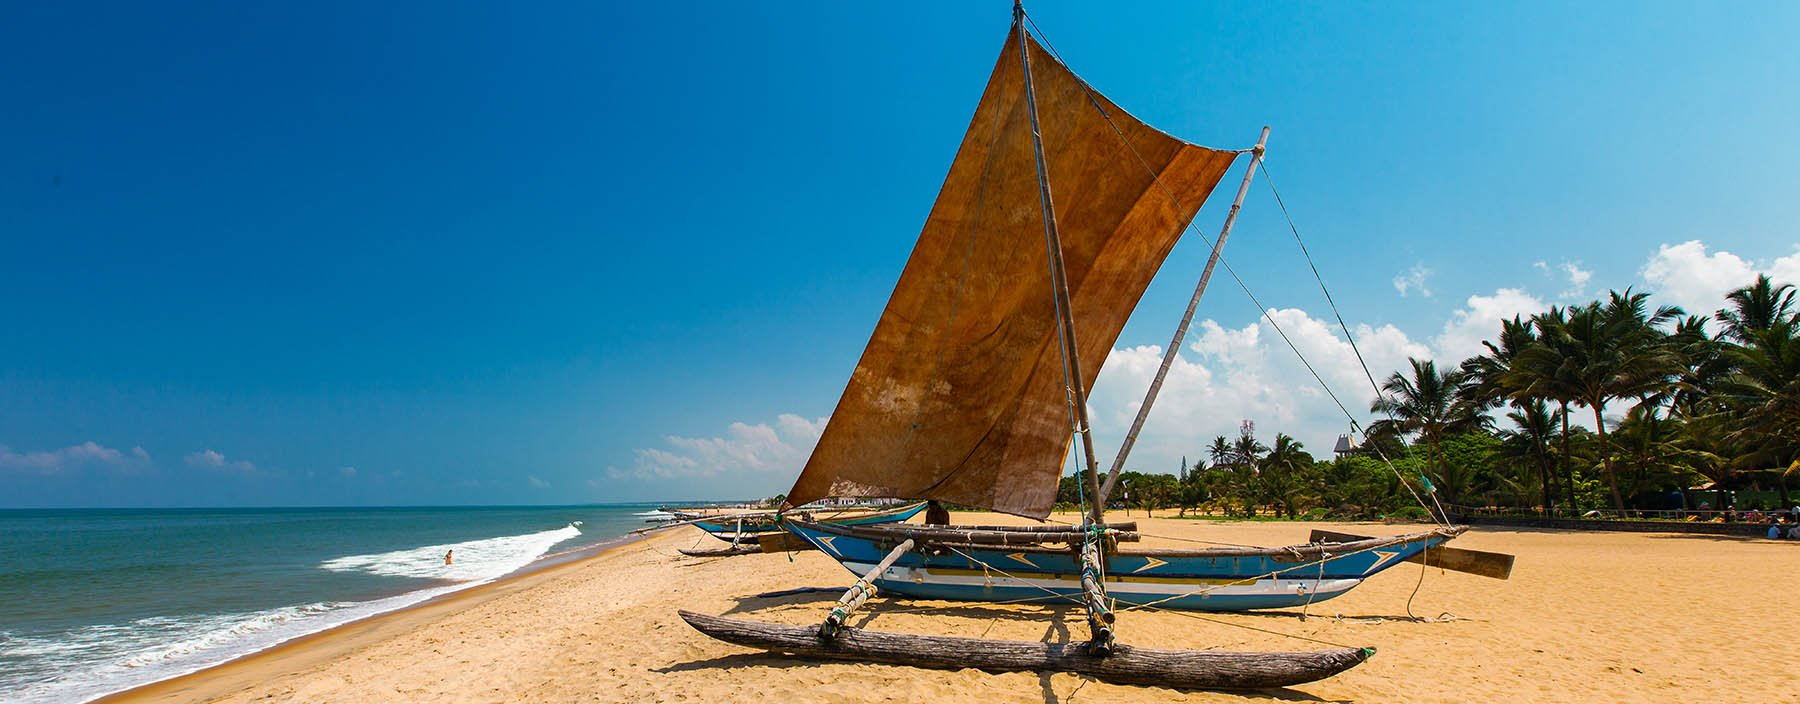 sri lanka, negombo, beach.jpg